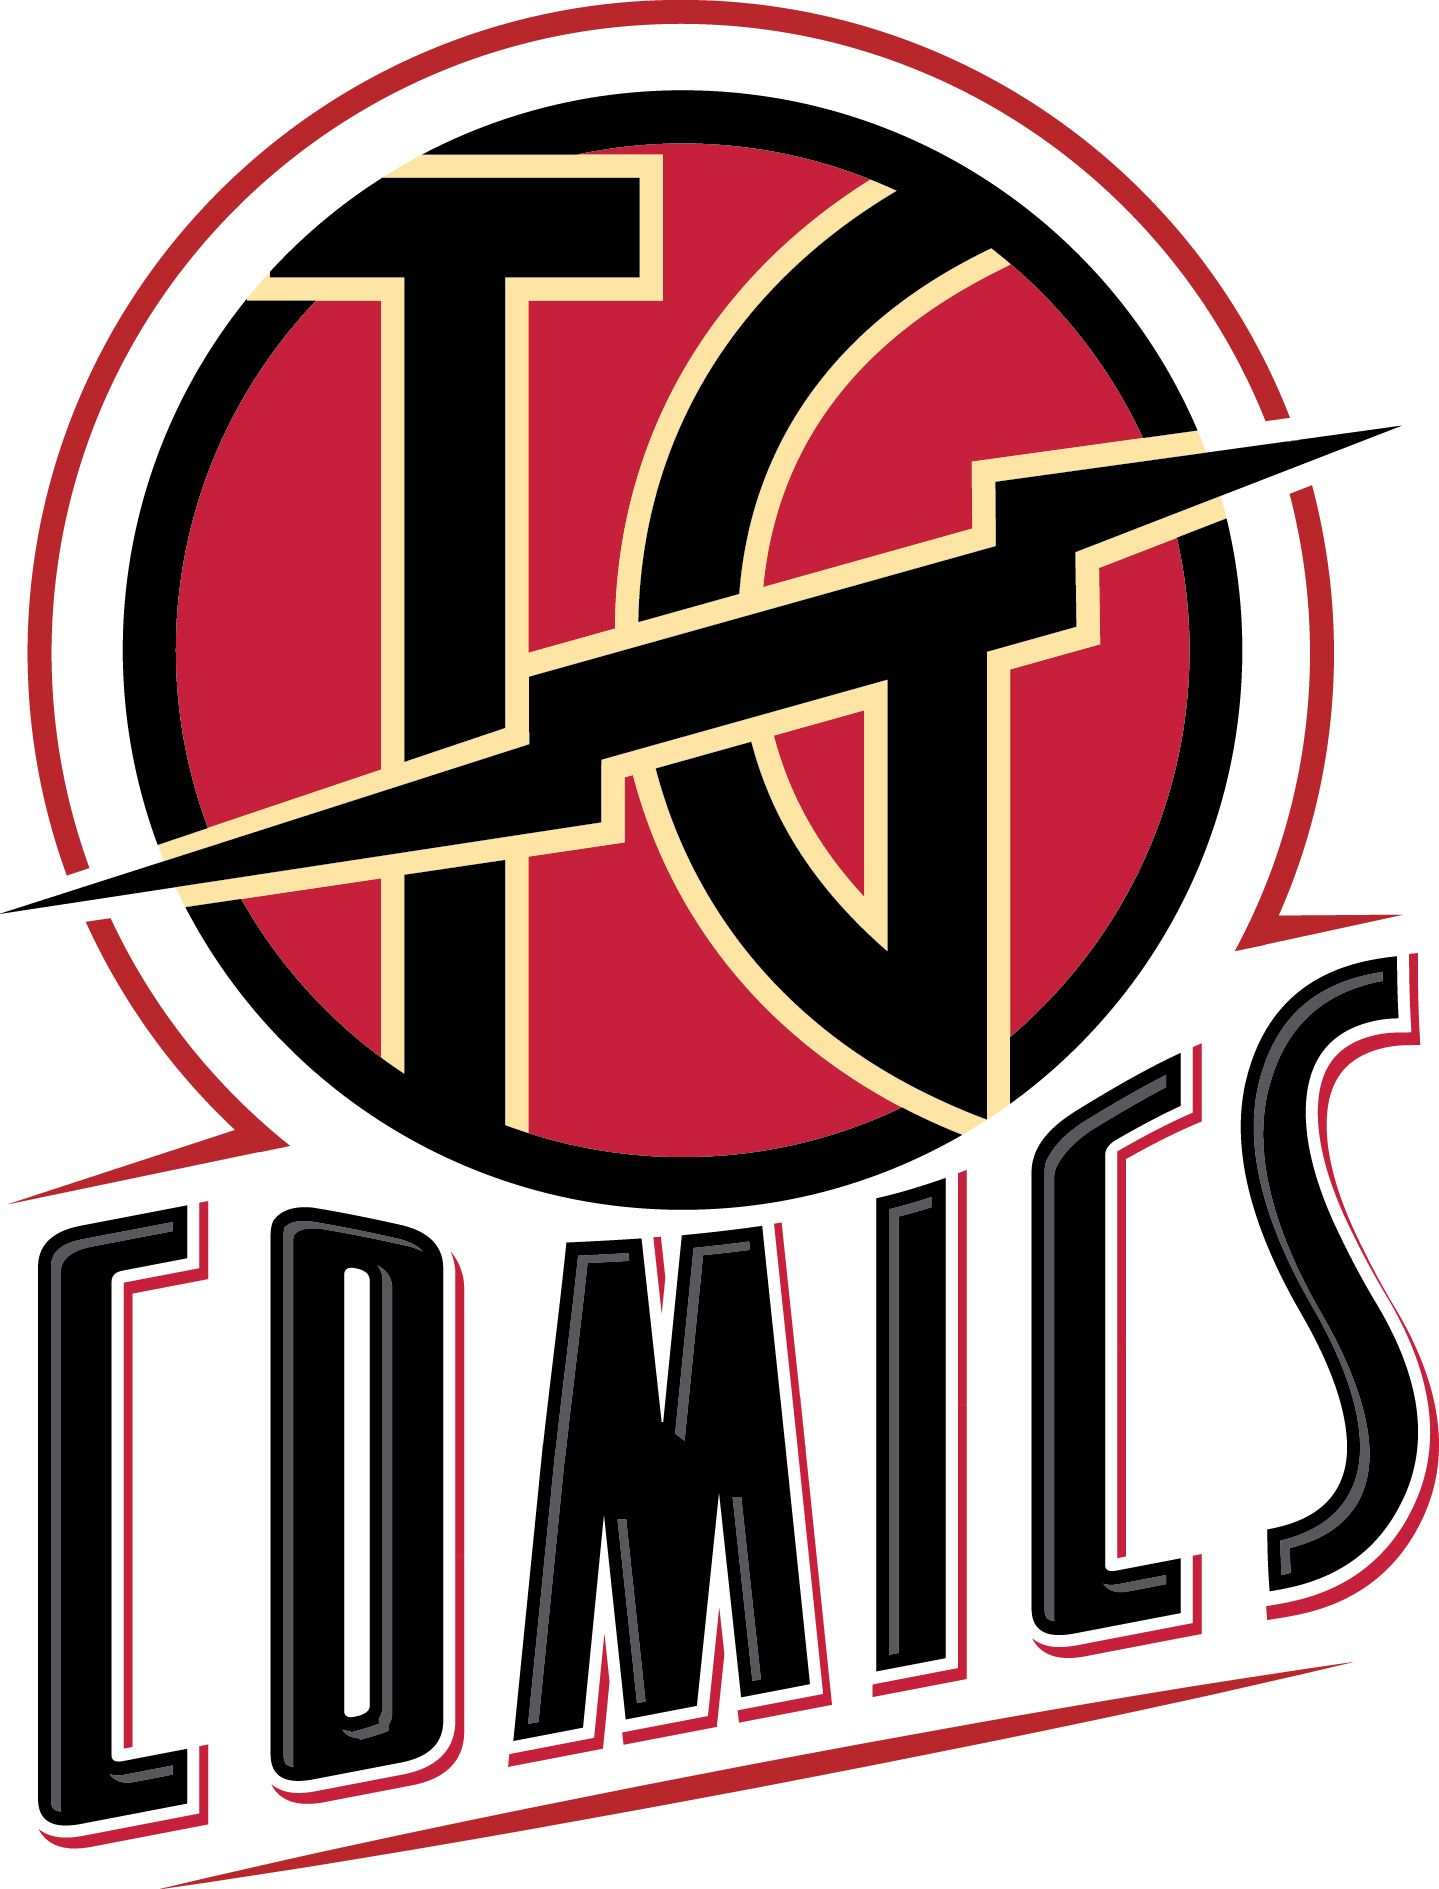 Logo for TG Comics Graphic design photography, Logos